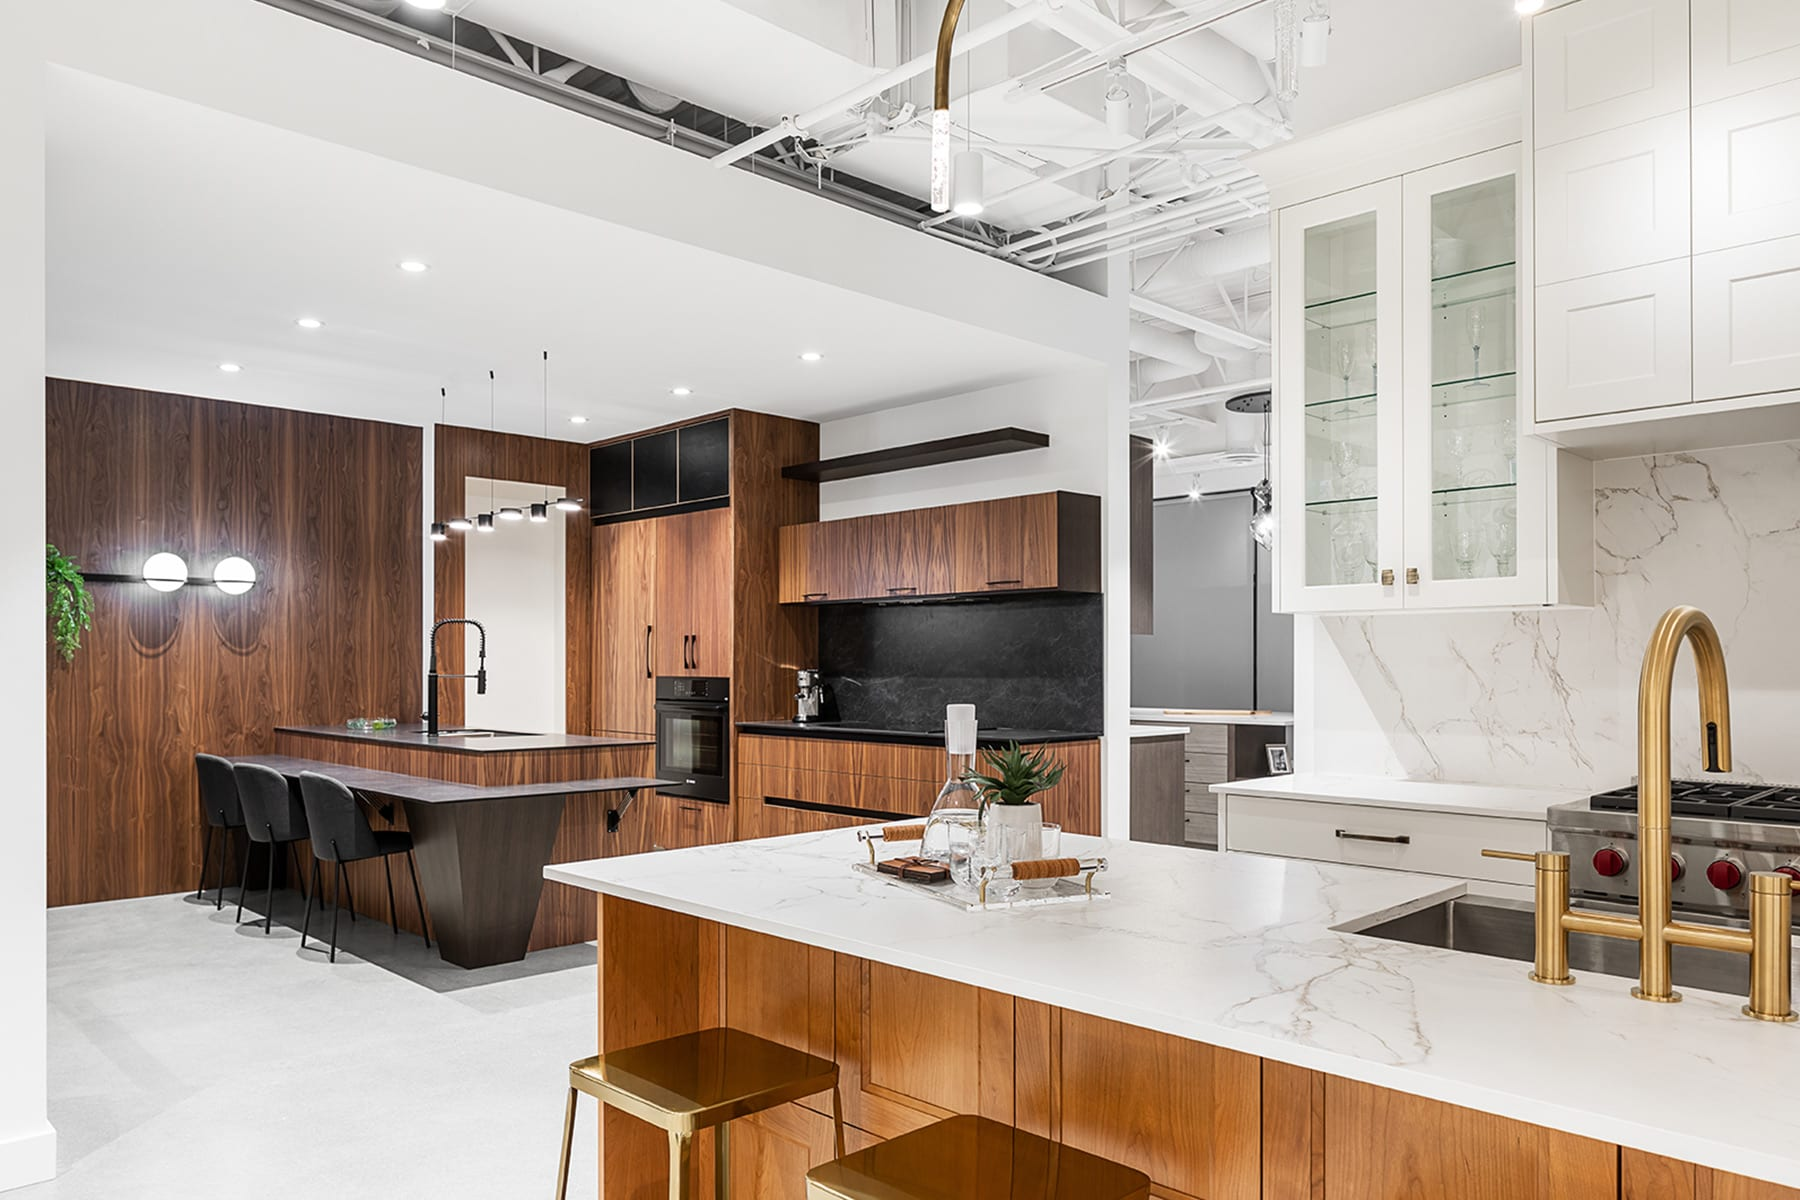 Kitchen Art Design showroom in Richmond BC. Full interior demolition, new walls, showroom kitchenettes, cabinets, new finishes, concrete floor, painting and drywall, open ceiling. Kitchens with high grade finishes.